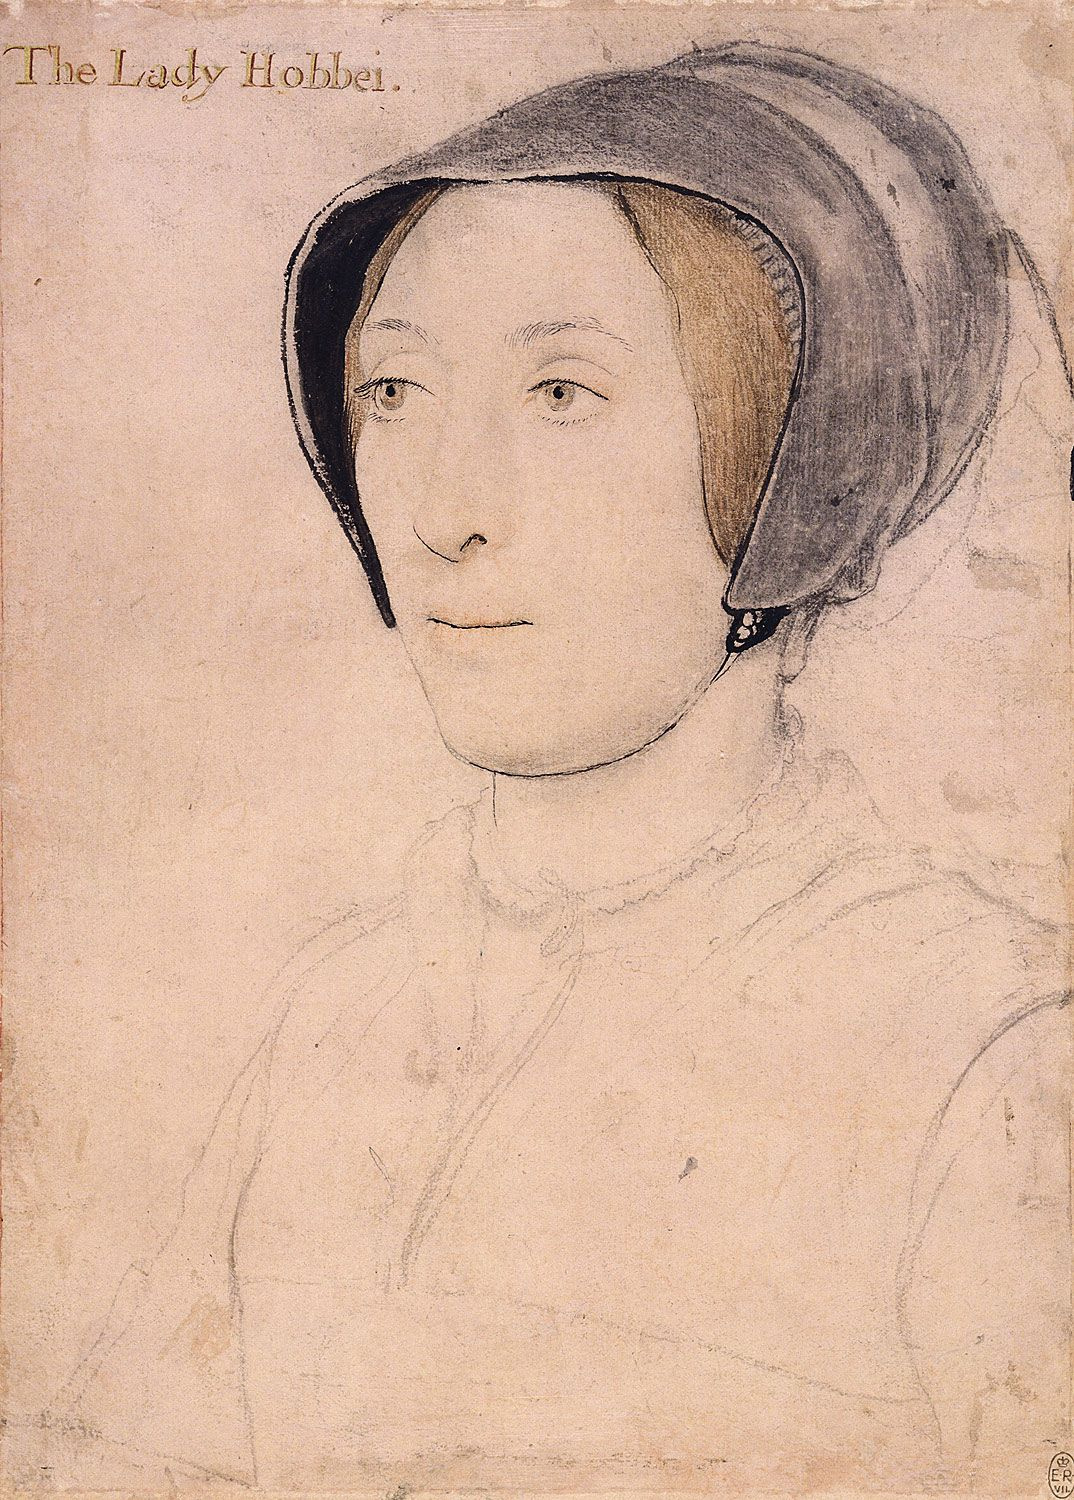 1536 - Lady Hoby by Holbein the Younger